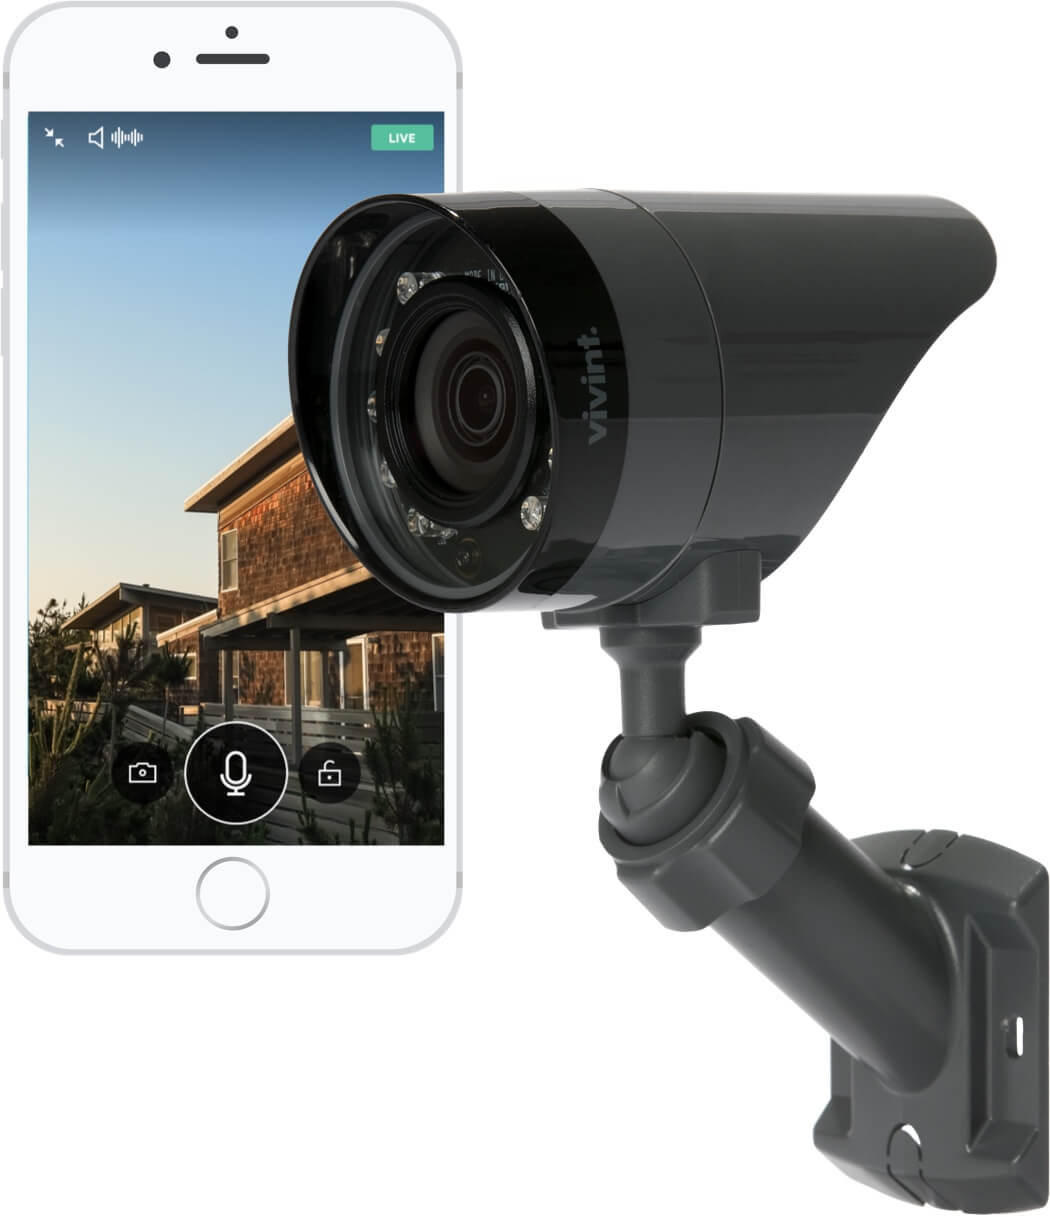 Vivint camera about camera - Exterior surveillance cameras for home ...